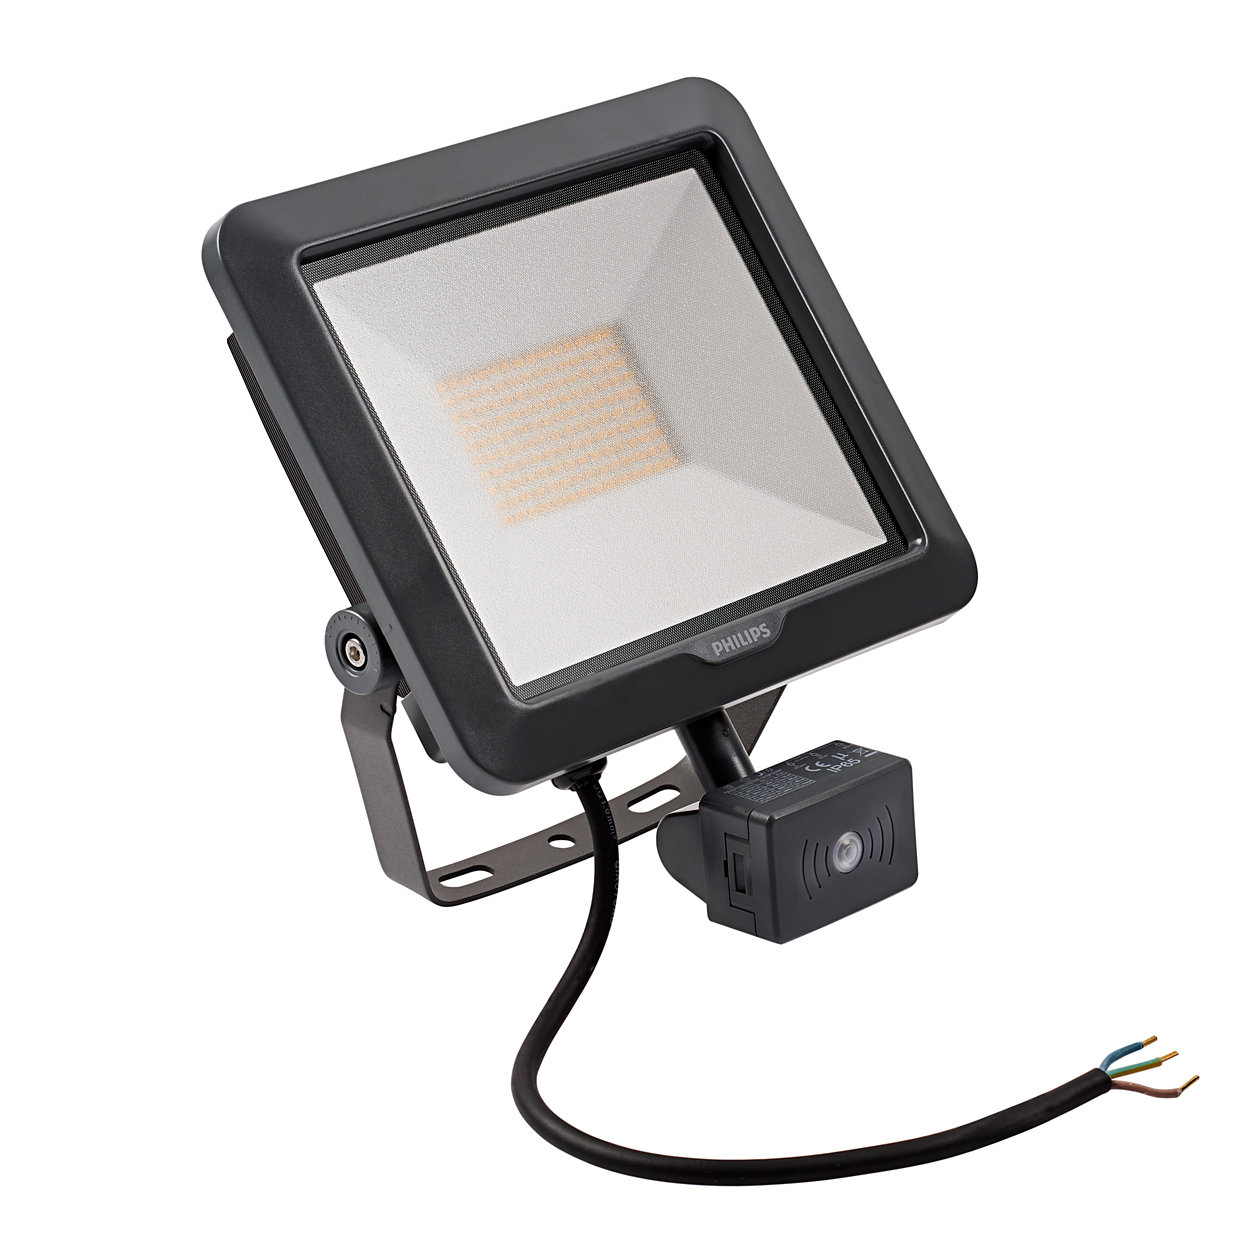 Simply great LEDSwitch now to great quality LED at a great price